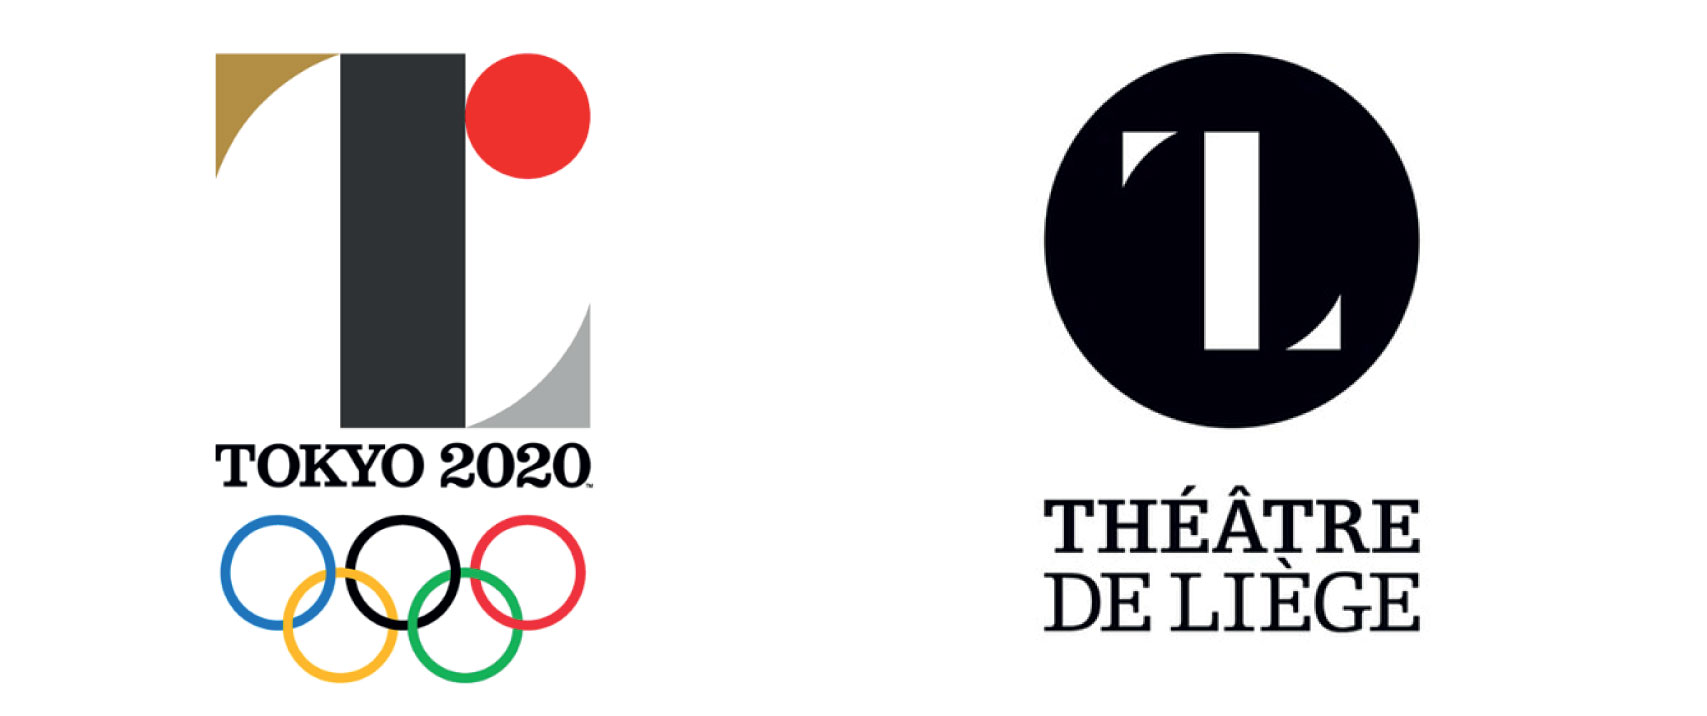 The Tokyo 2020 emblem was withdrawn due to accusations that it plagiarised the Theatre De Liege logo